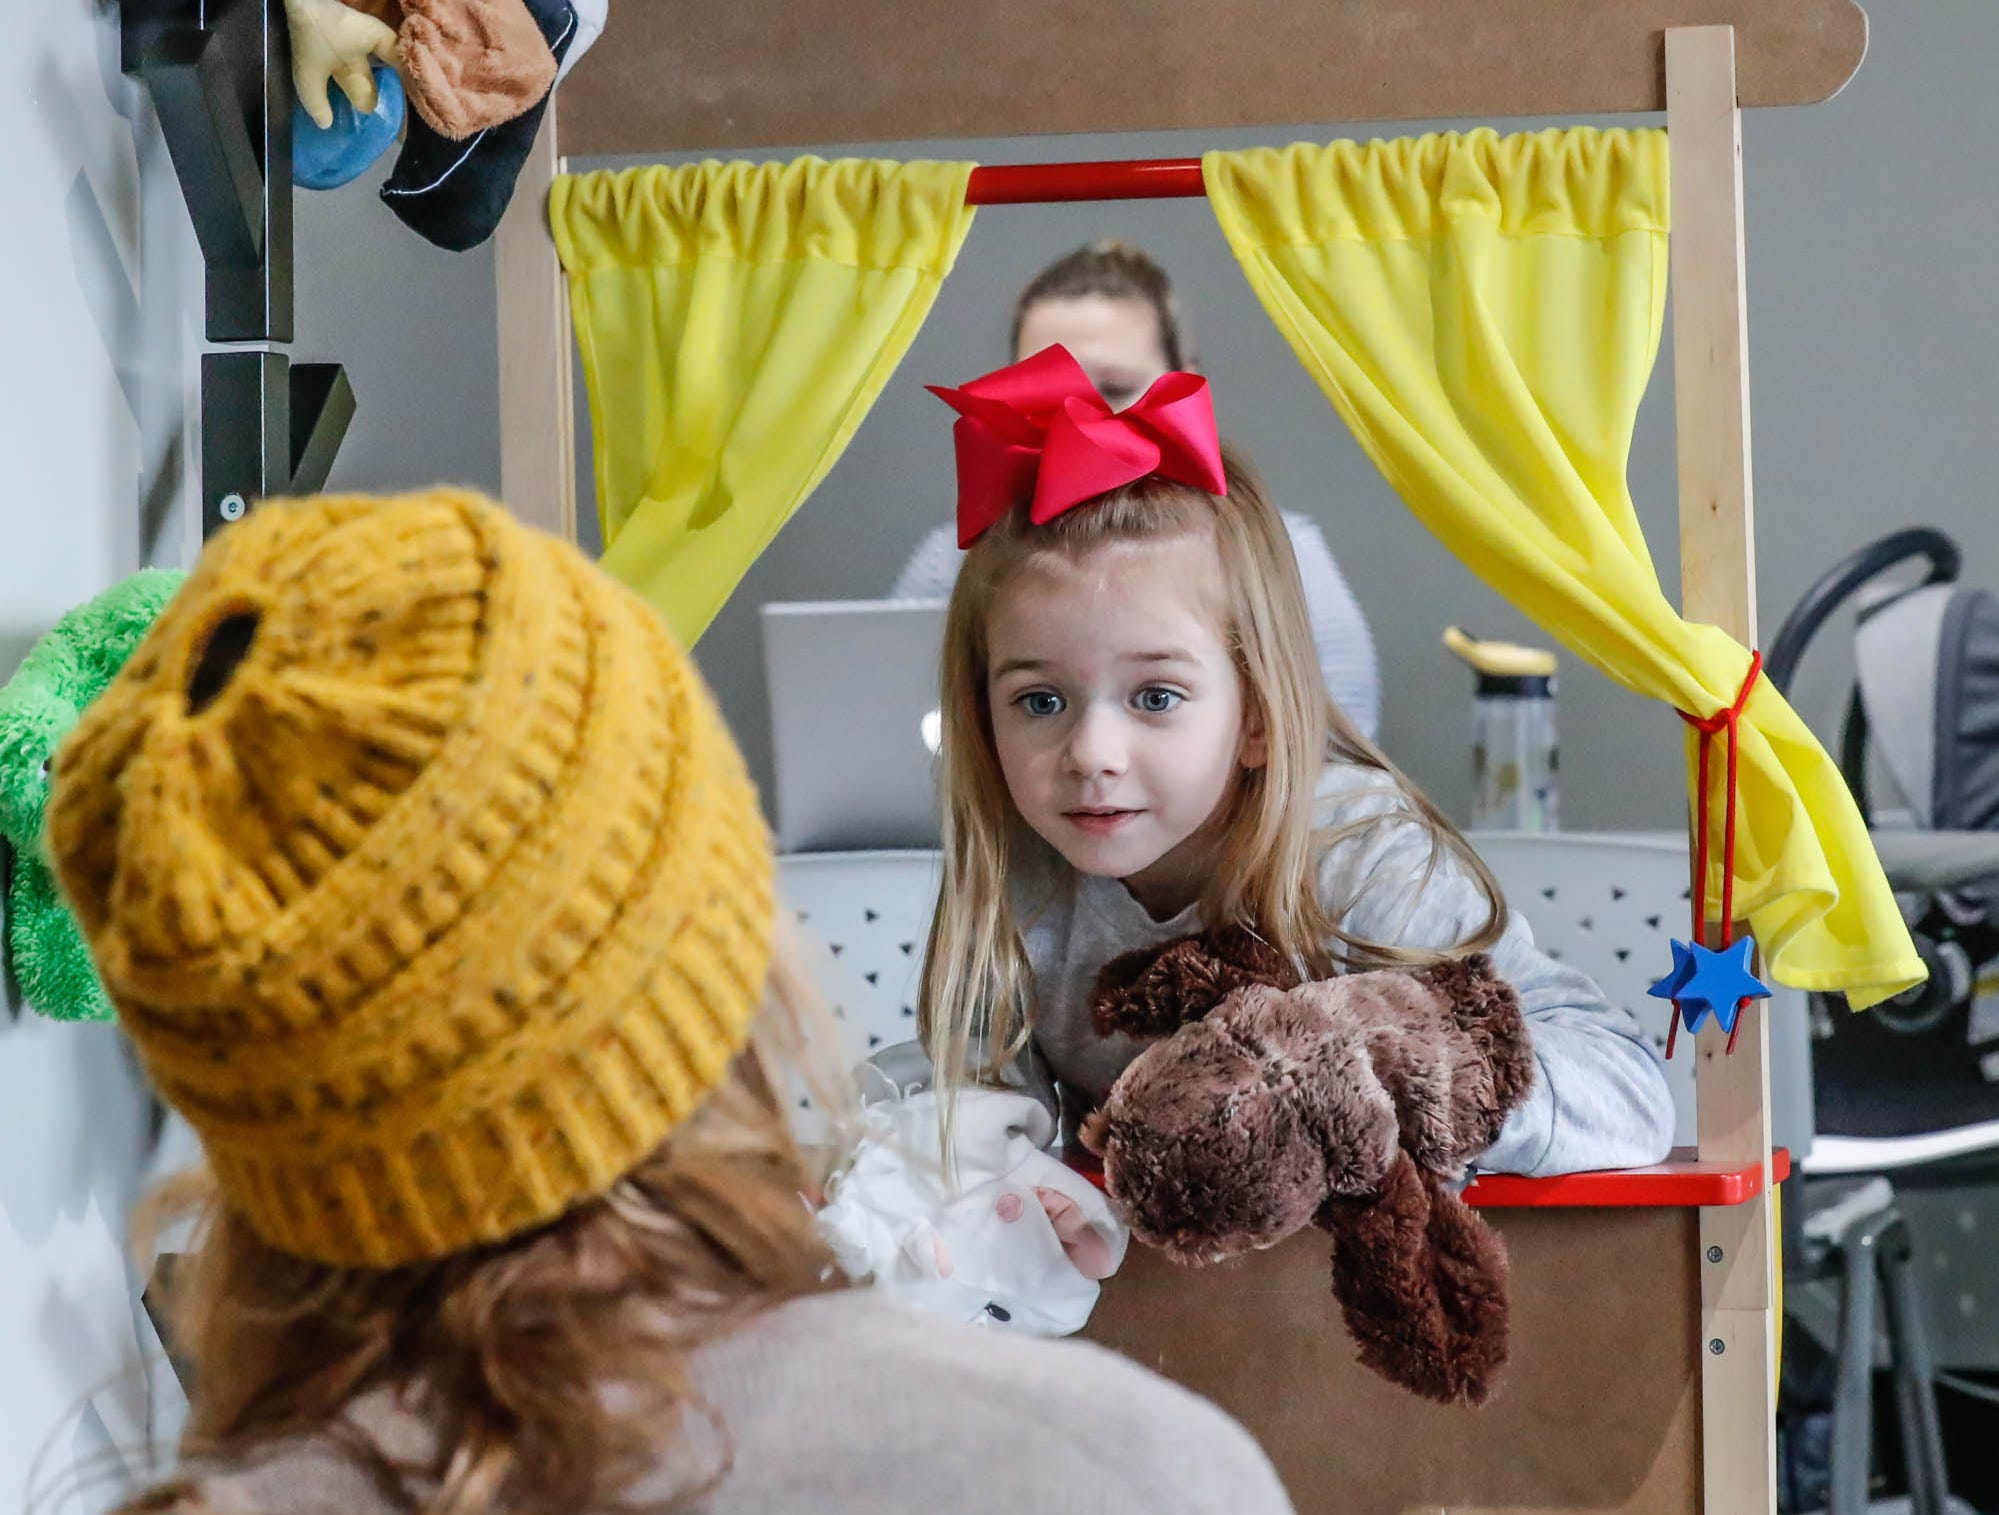 Ali Coulom, left, and her daughter Leslie Coulom play with a puppet theatre at The Little Village Playroom, 9850 N. Michigan Rd, Carmel, Ind., on Tuesday, Feb. 5, 2019.